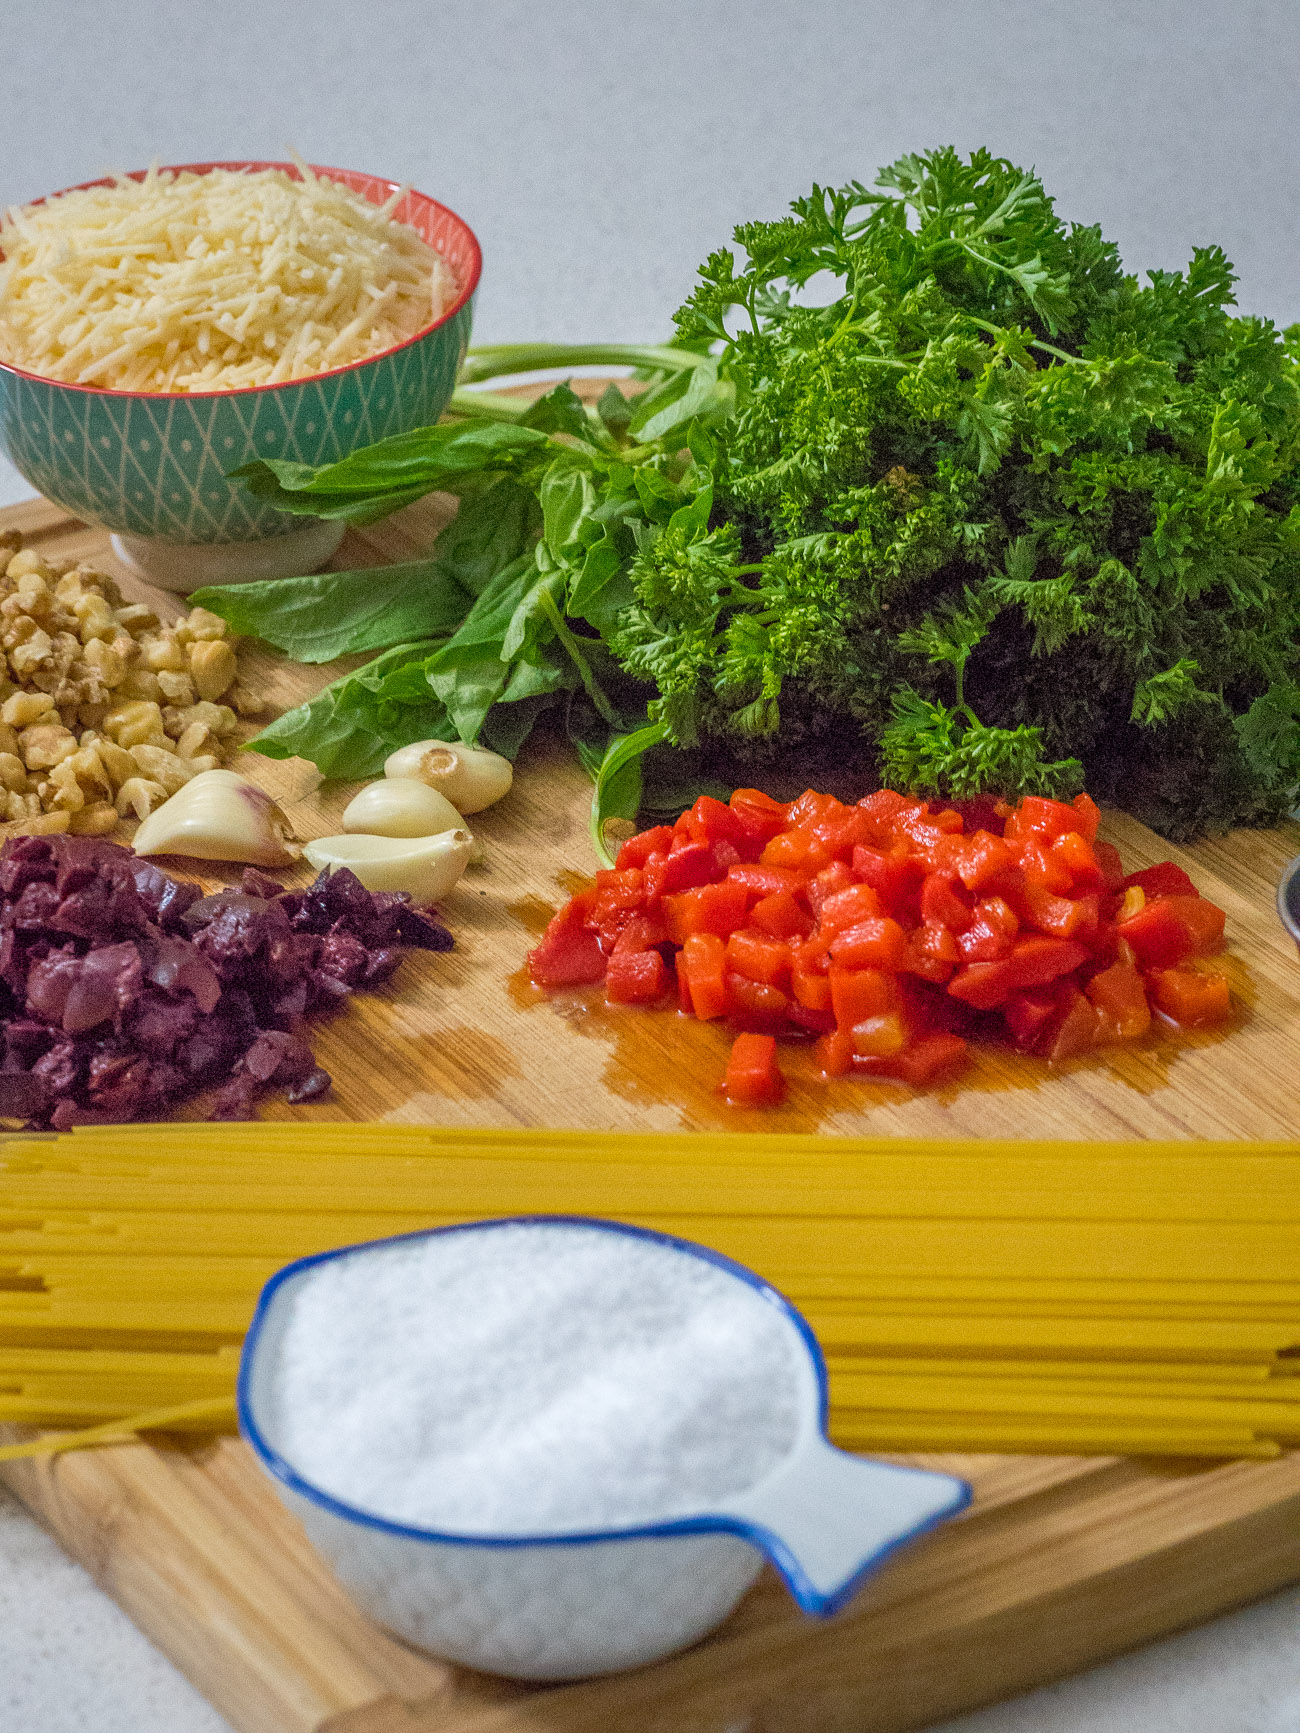 ingredients for Julia Child's Spaghetti Marco Polo